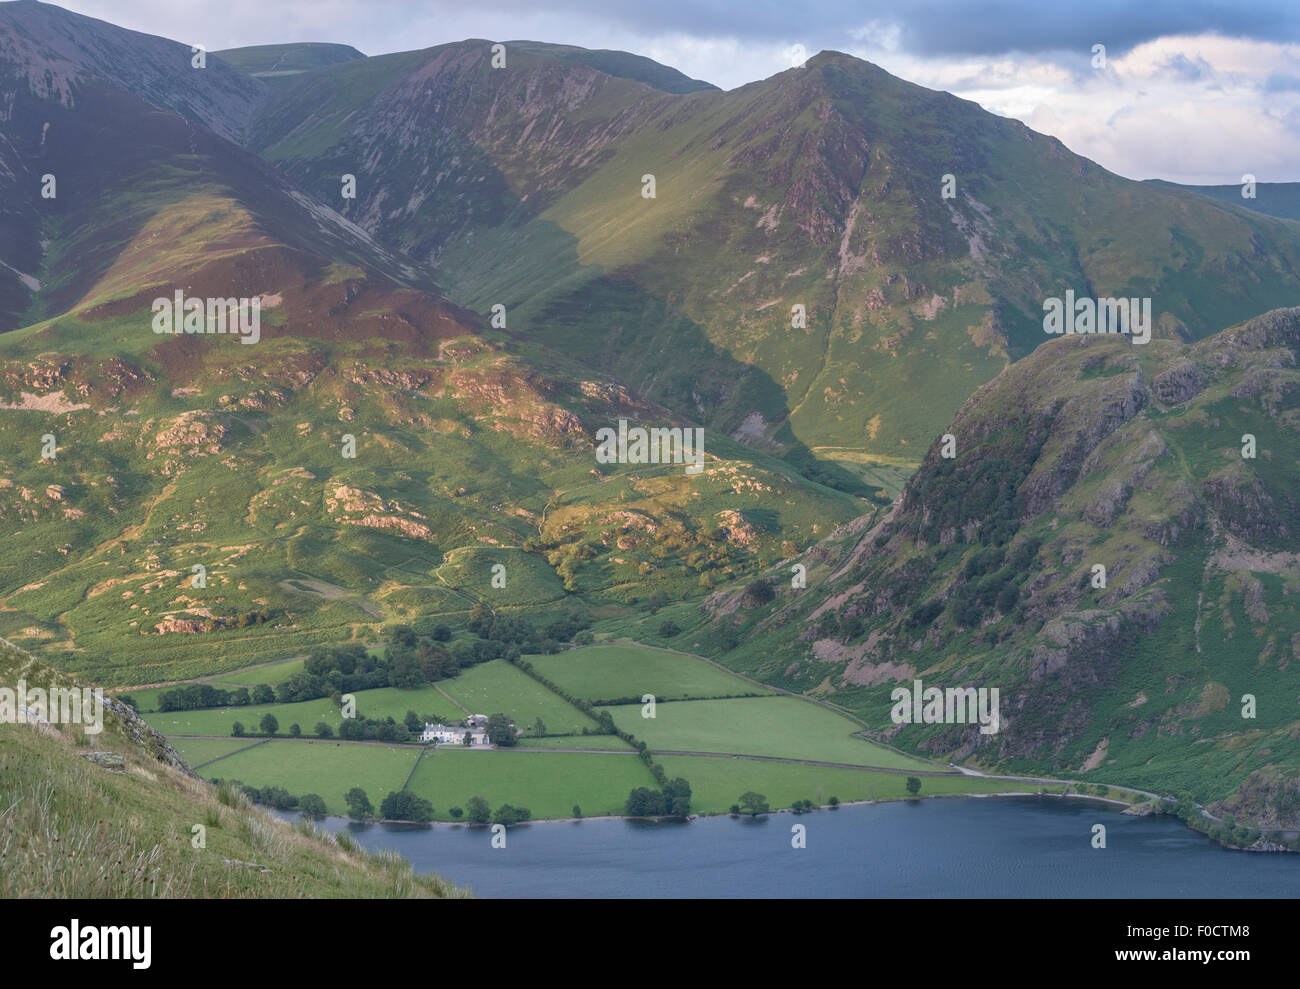 Lad Hows, Whiteless Pike and Rannerdale from Mellbreak in the English Lake District national park - Stock Image